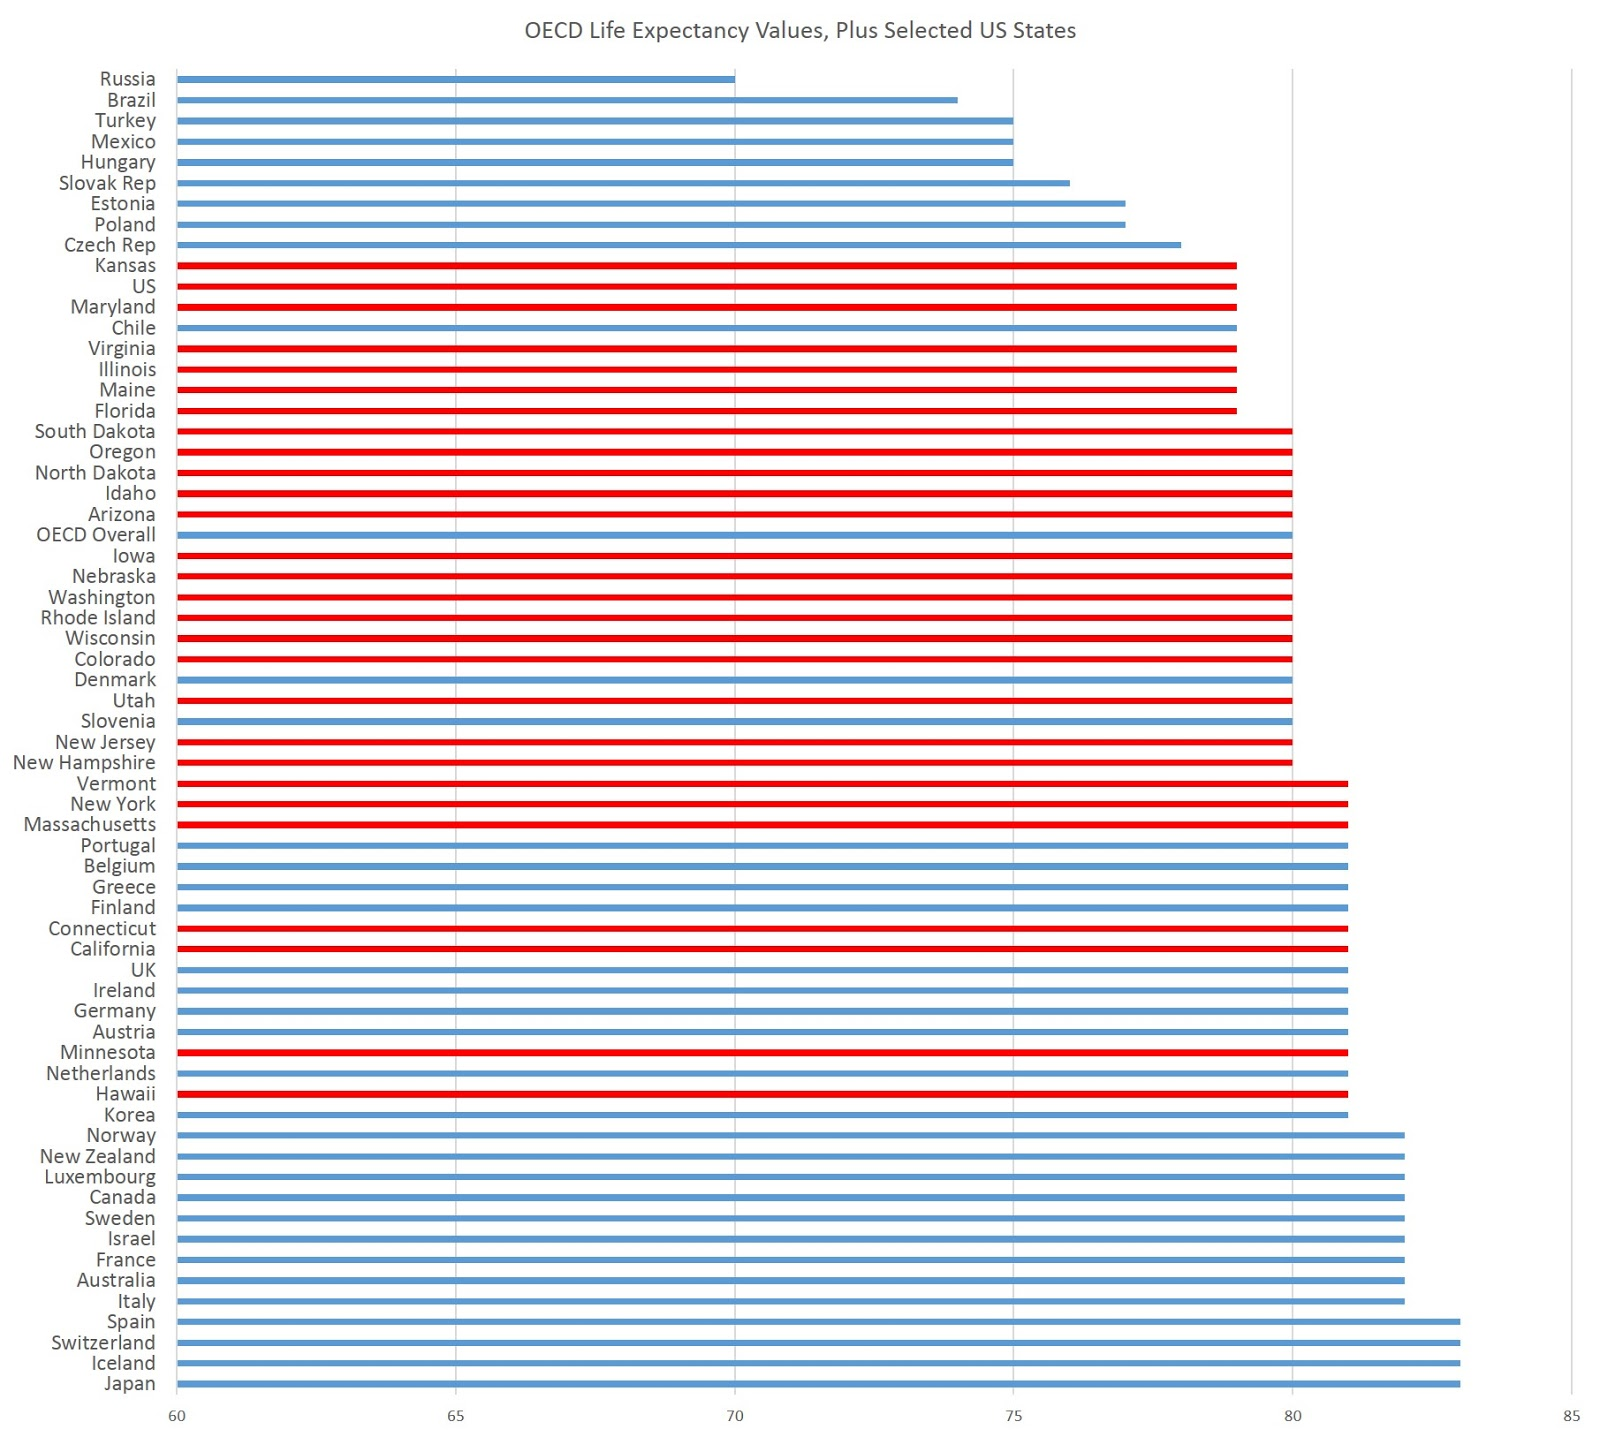 Life Expectancy: If Denmark Were a US State, It Would Rank